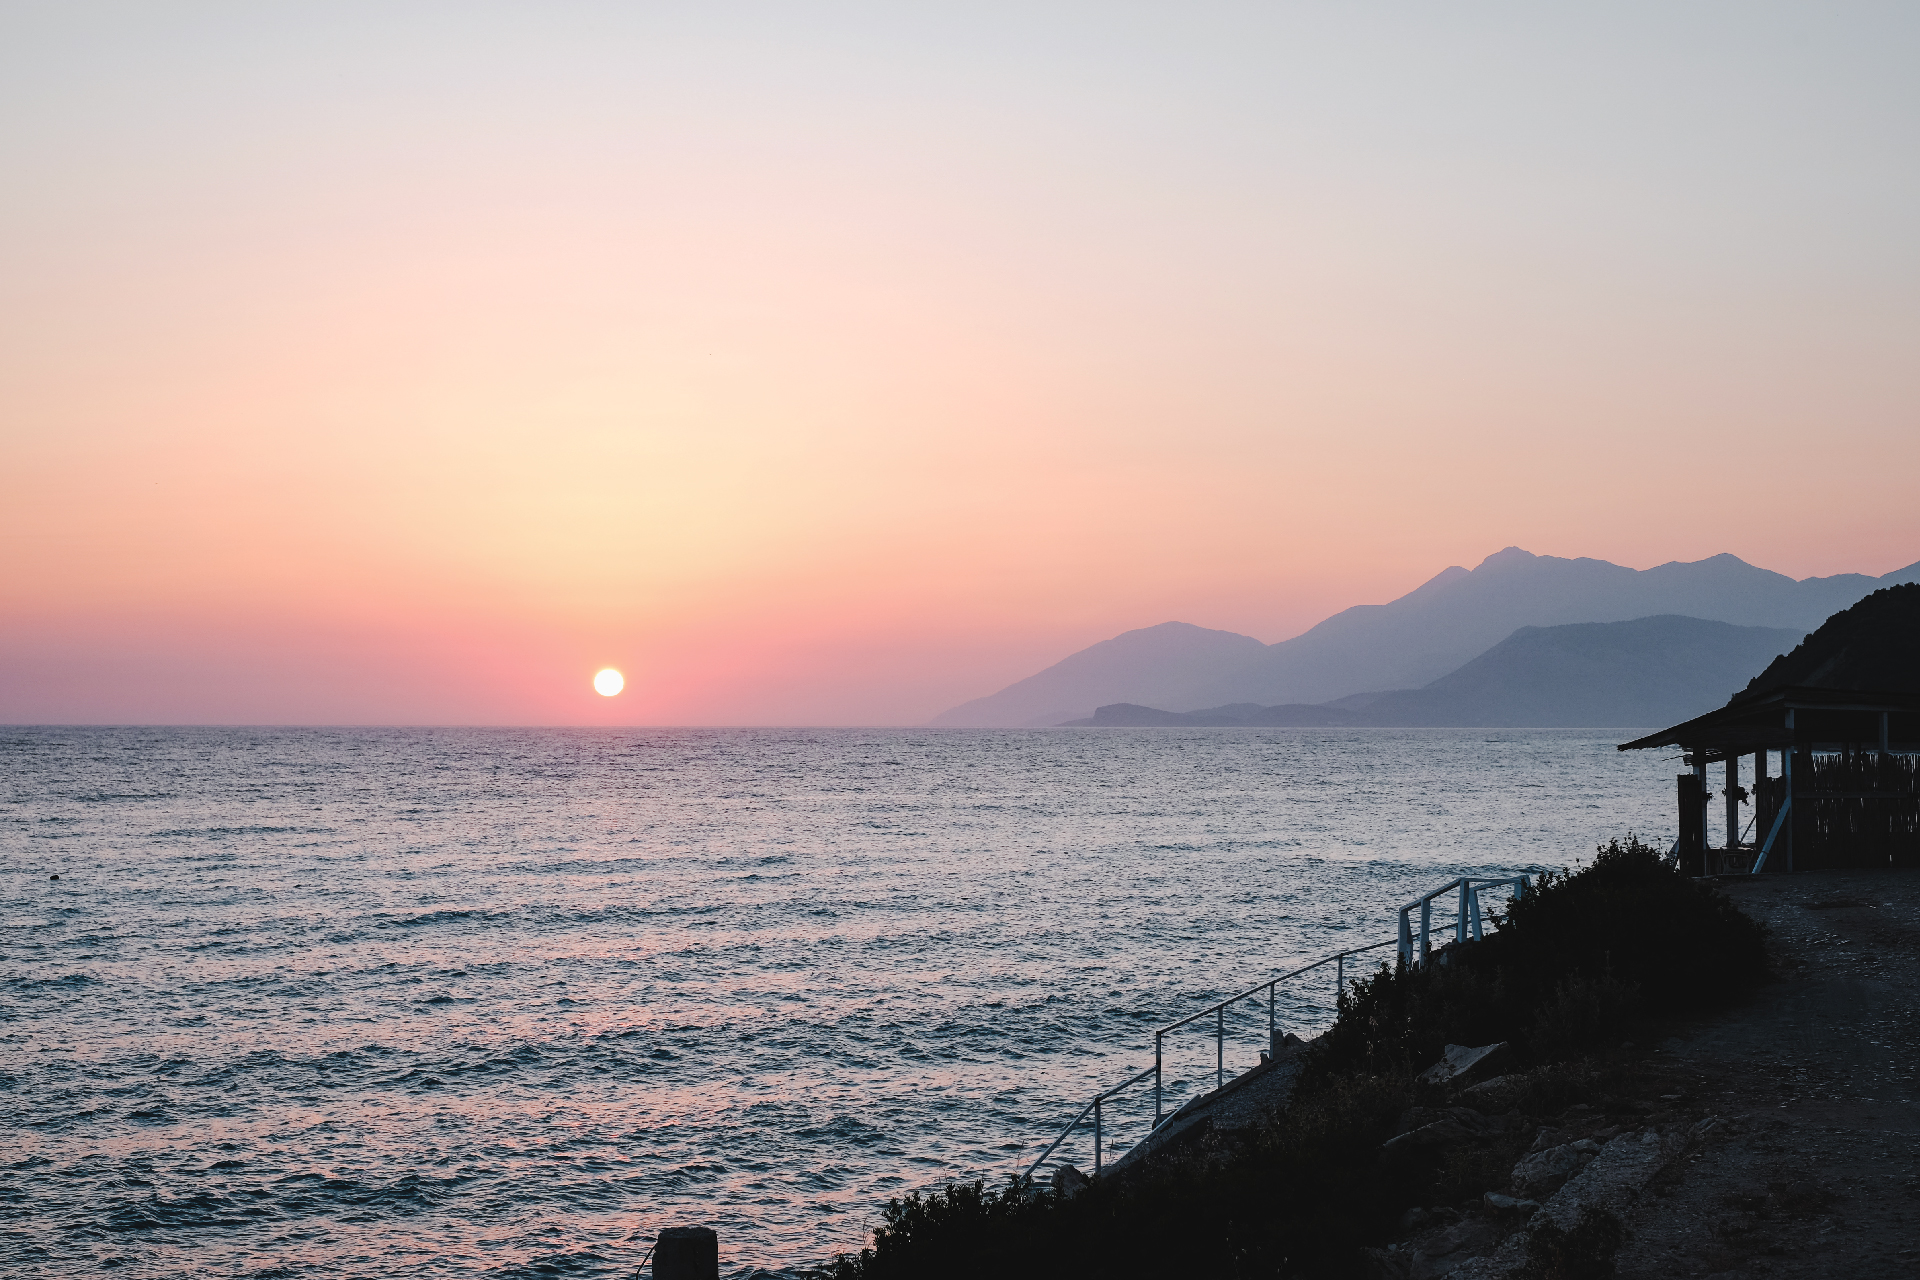 sunset at Lukovë beach with mountains in the back, Albania